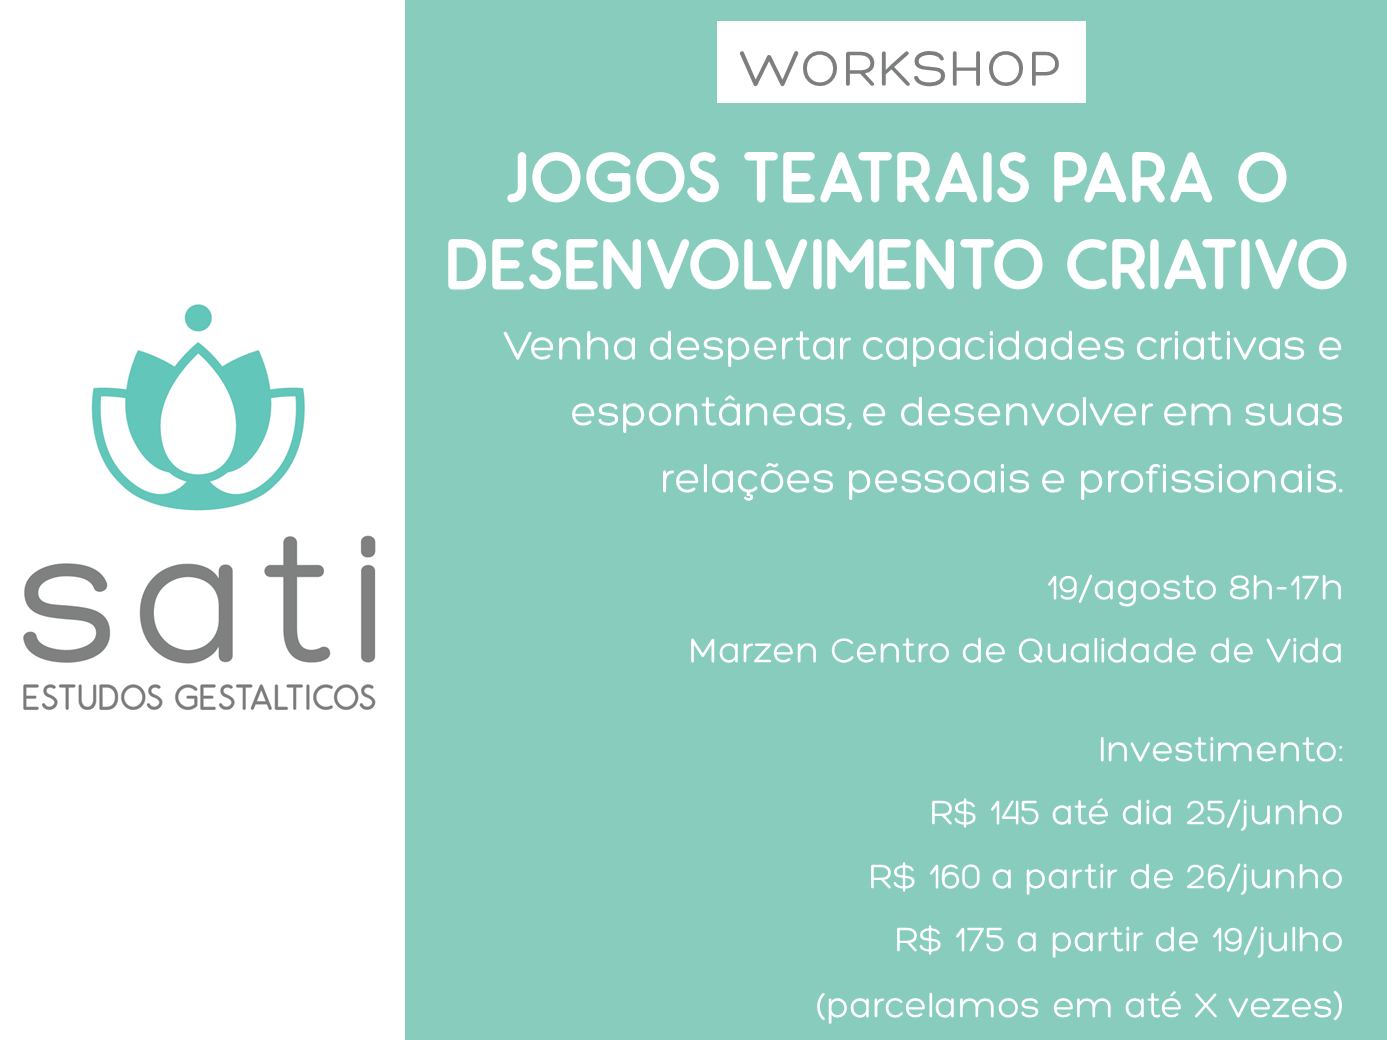 WORKSHOP JEAN _ arte para FB